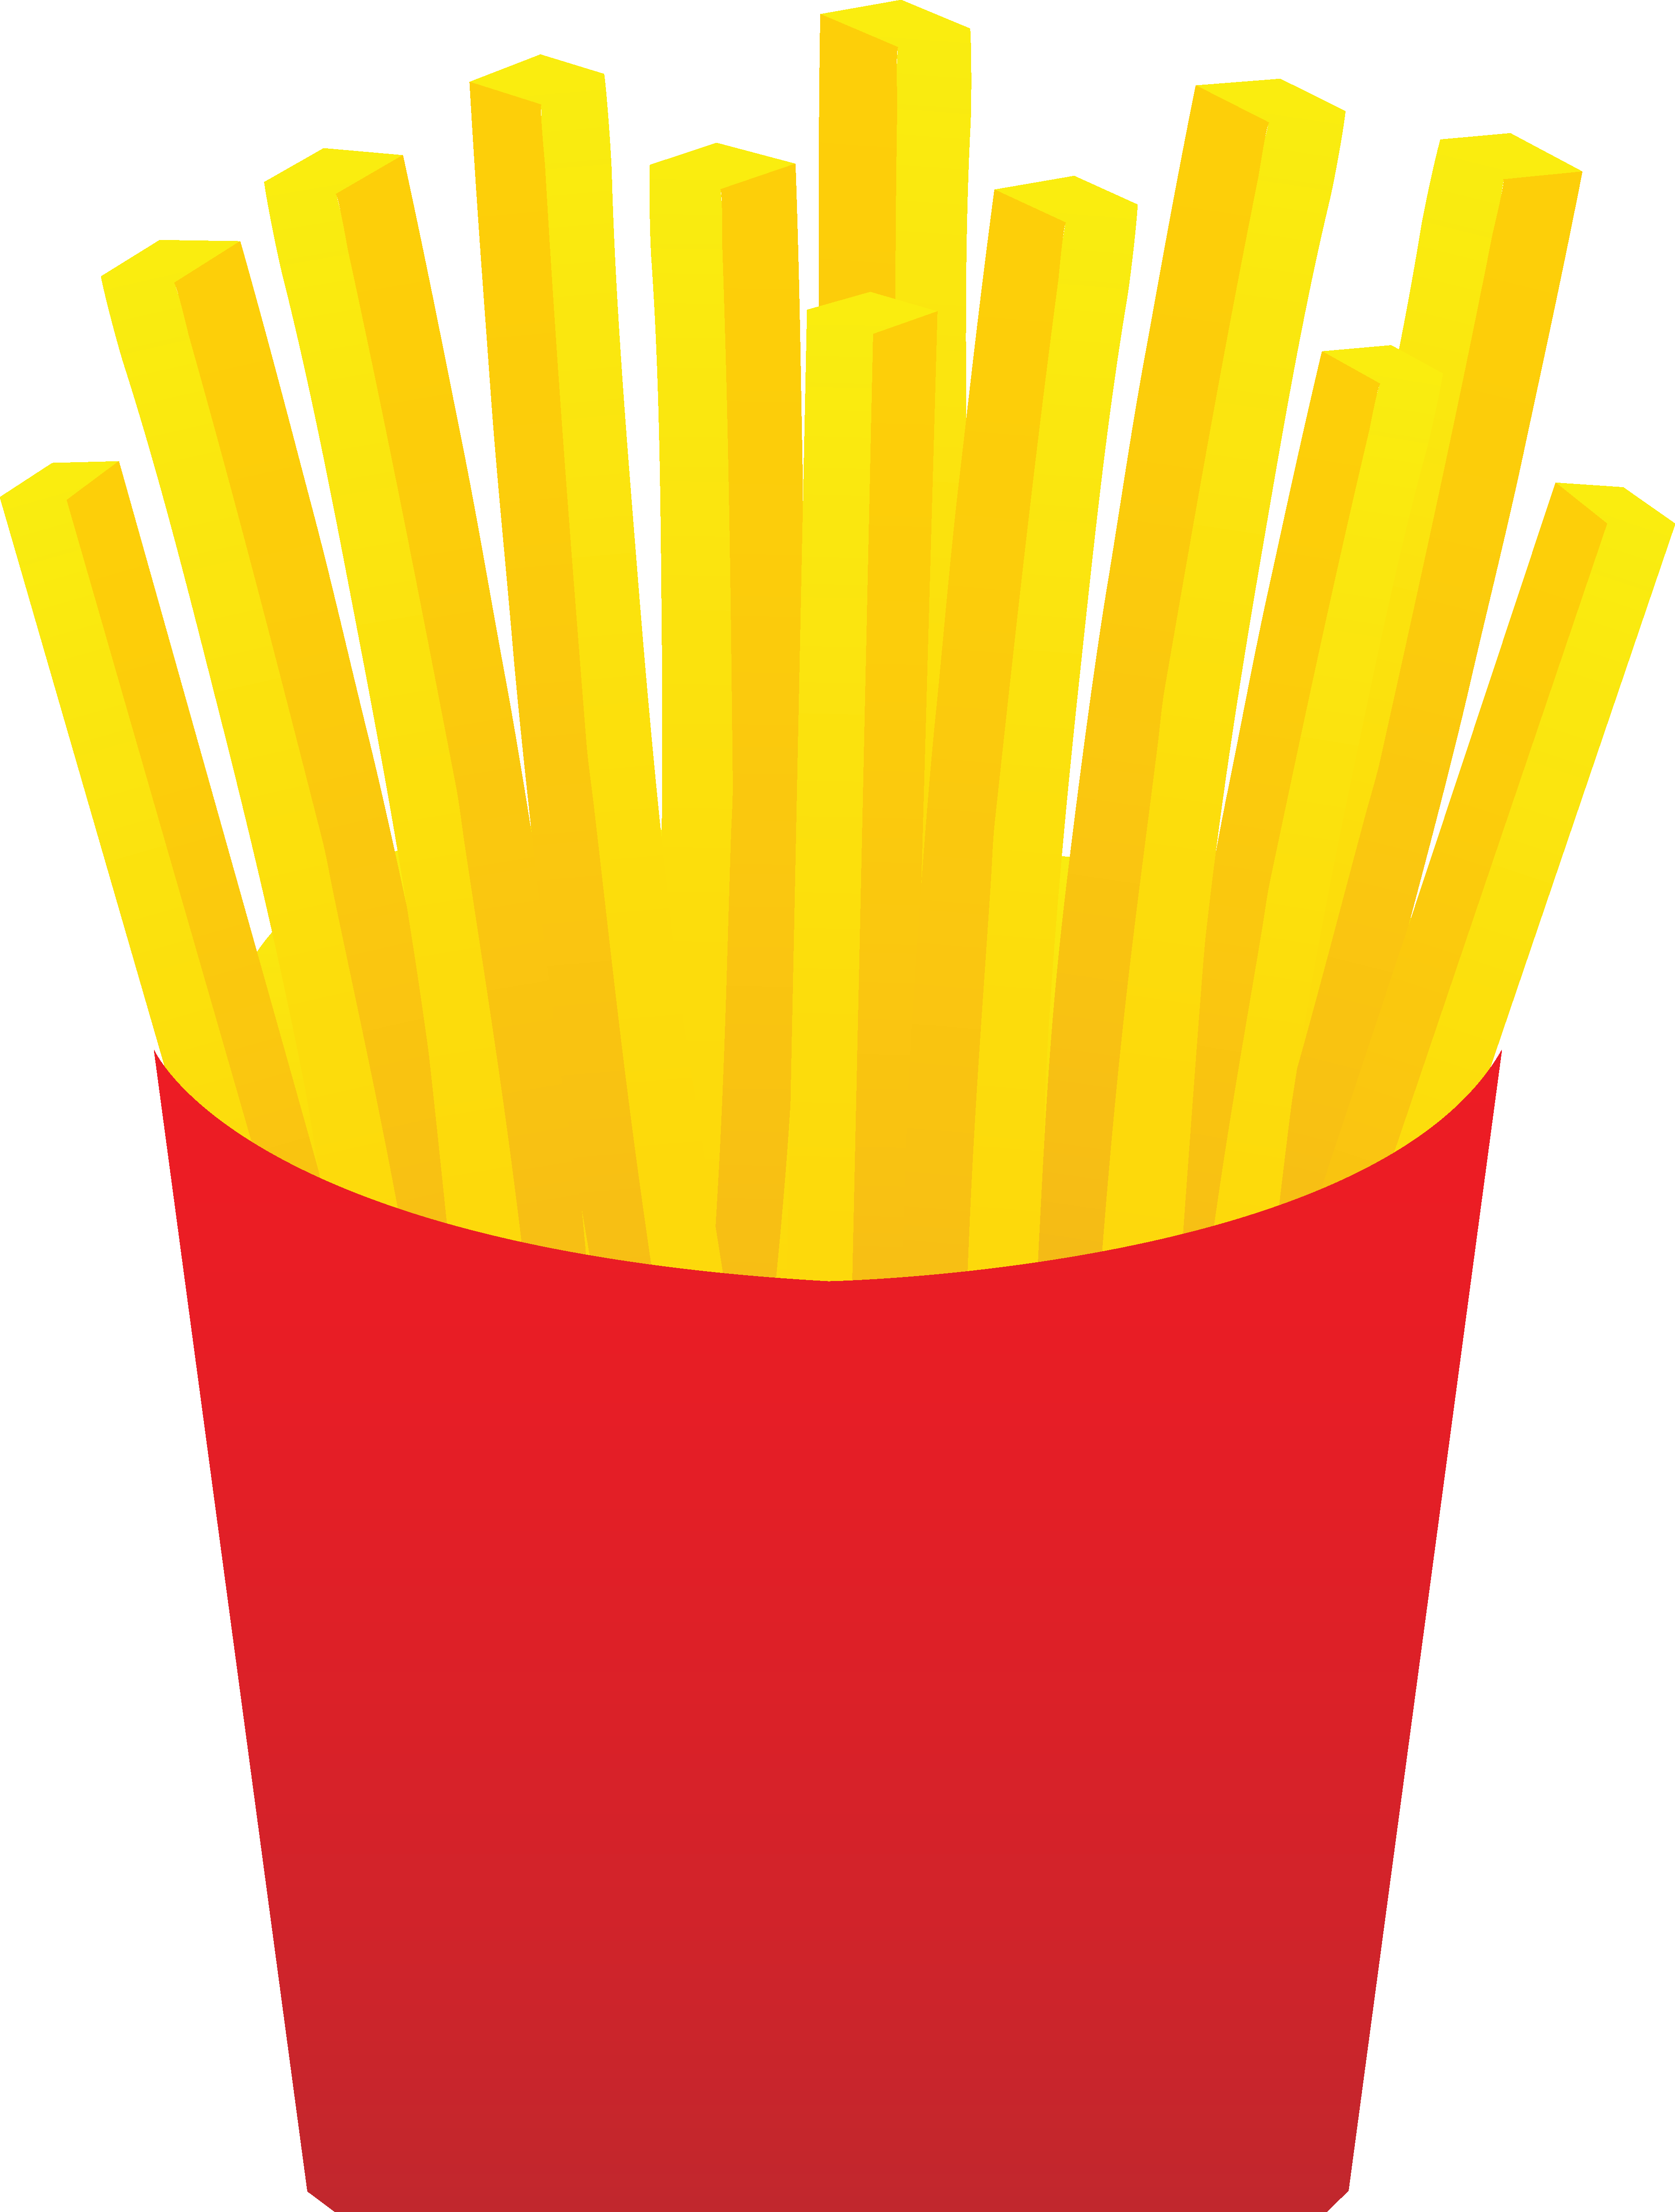 French Fries clipart crinkle cut Clip Clip Art Art Chips